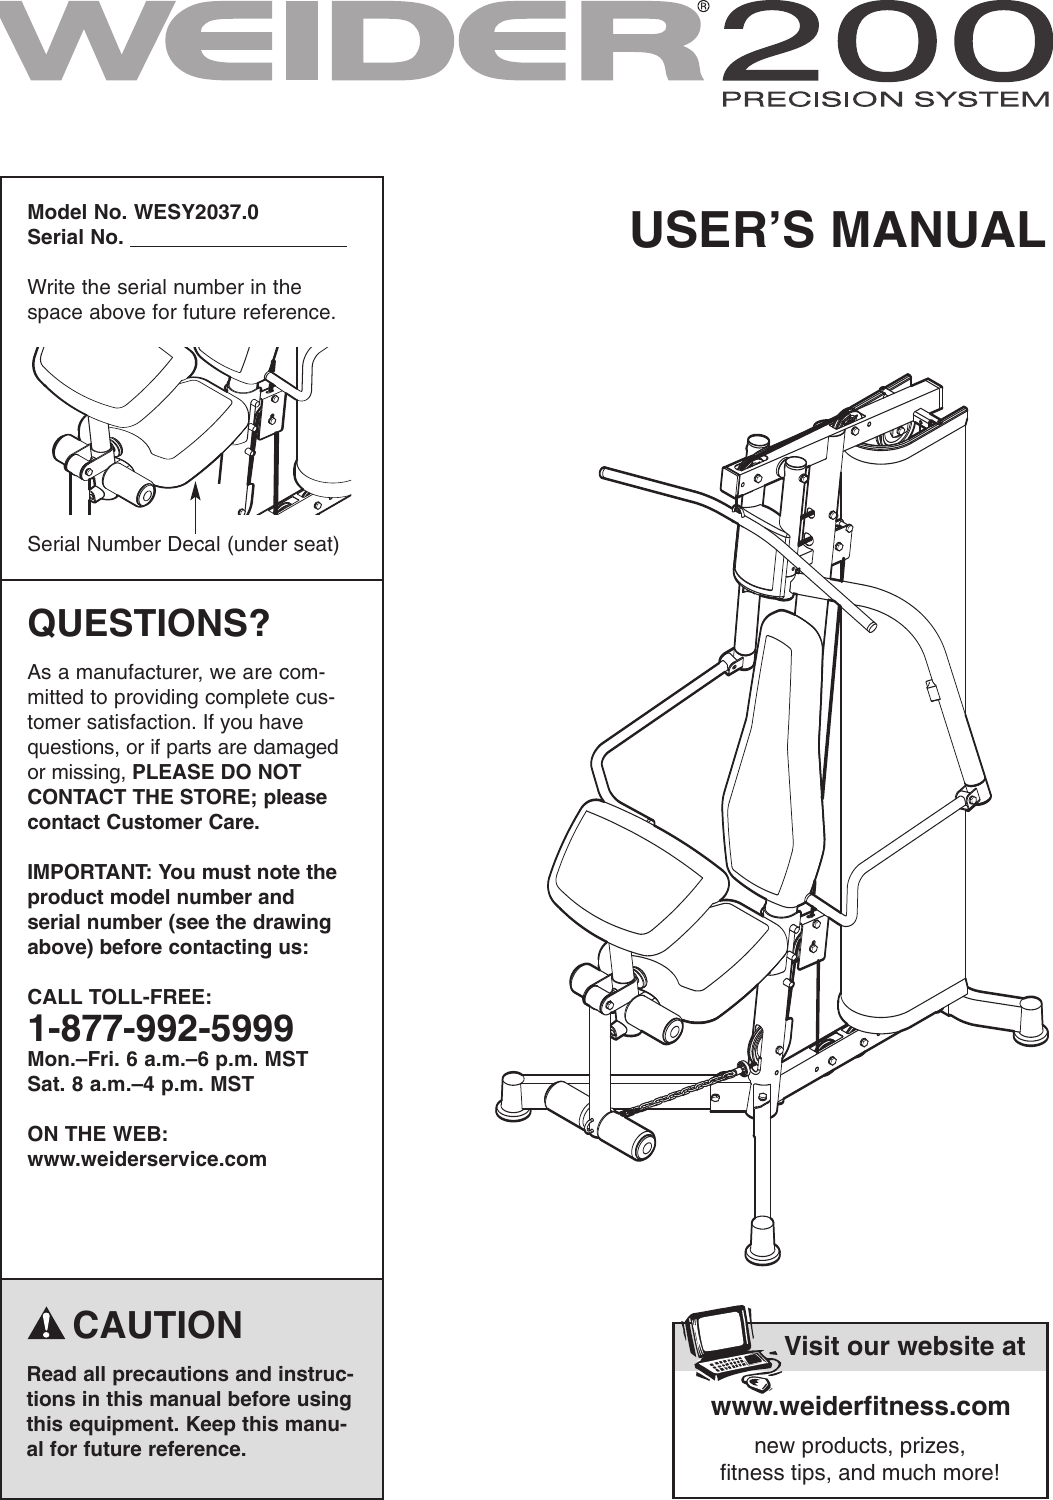 Weider Precision System 200 Wesy2037 Users Manual